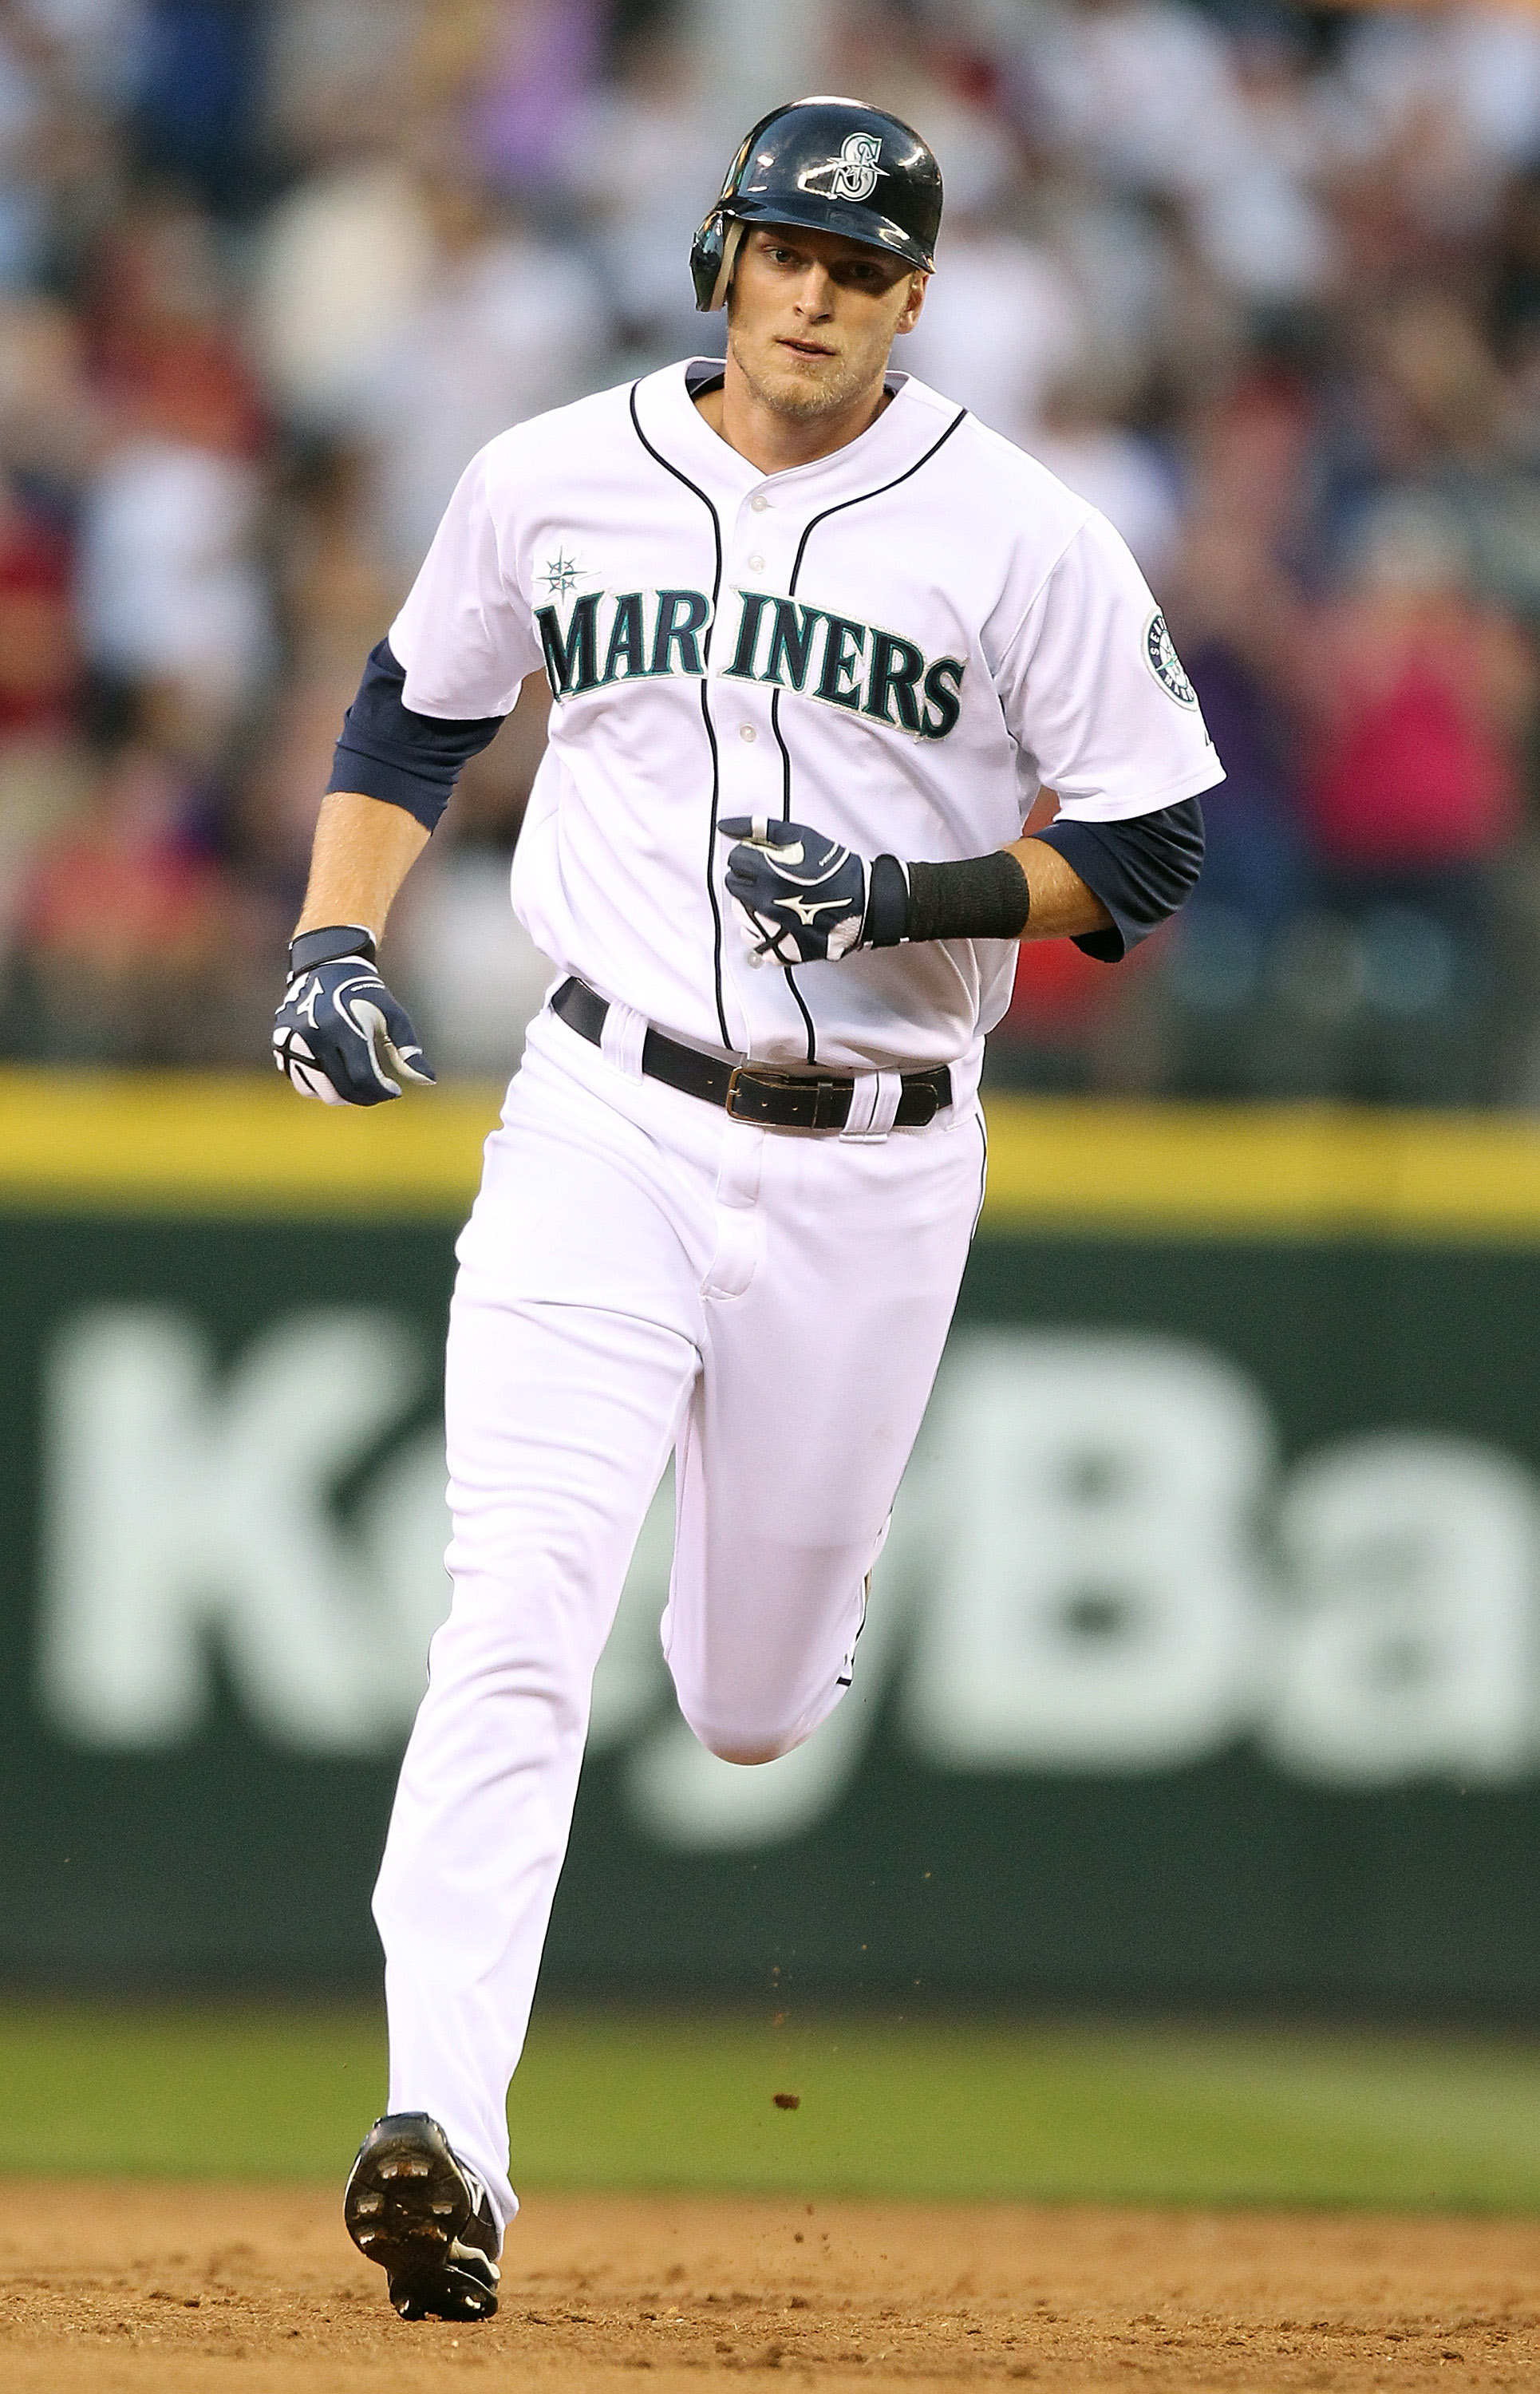 SEATTLE - JULY 24:  Michael Saunders #55 of the Seattle Mariners rounds the bases after hitting a two-run home run to break up a no-hitter in the sixth inning against the Boston Red Sox at Safeco Field on July 24, 2010 in Seattle, Washington. (Photo by Ot